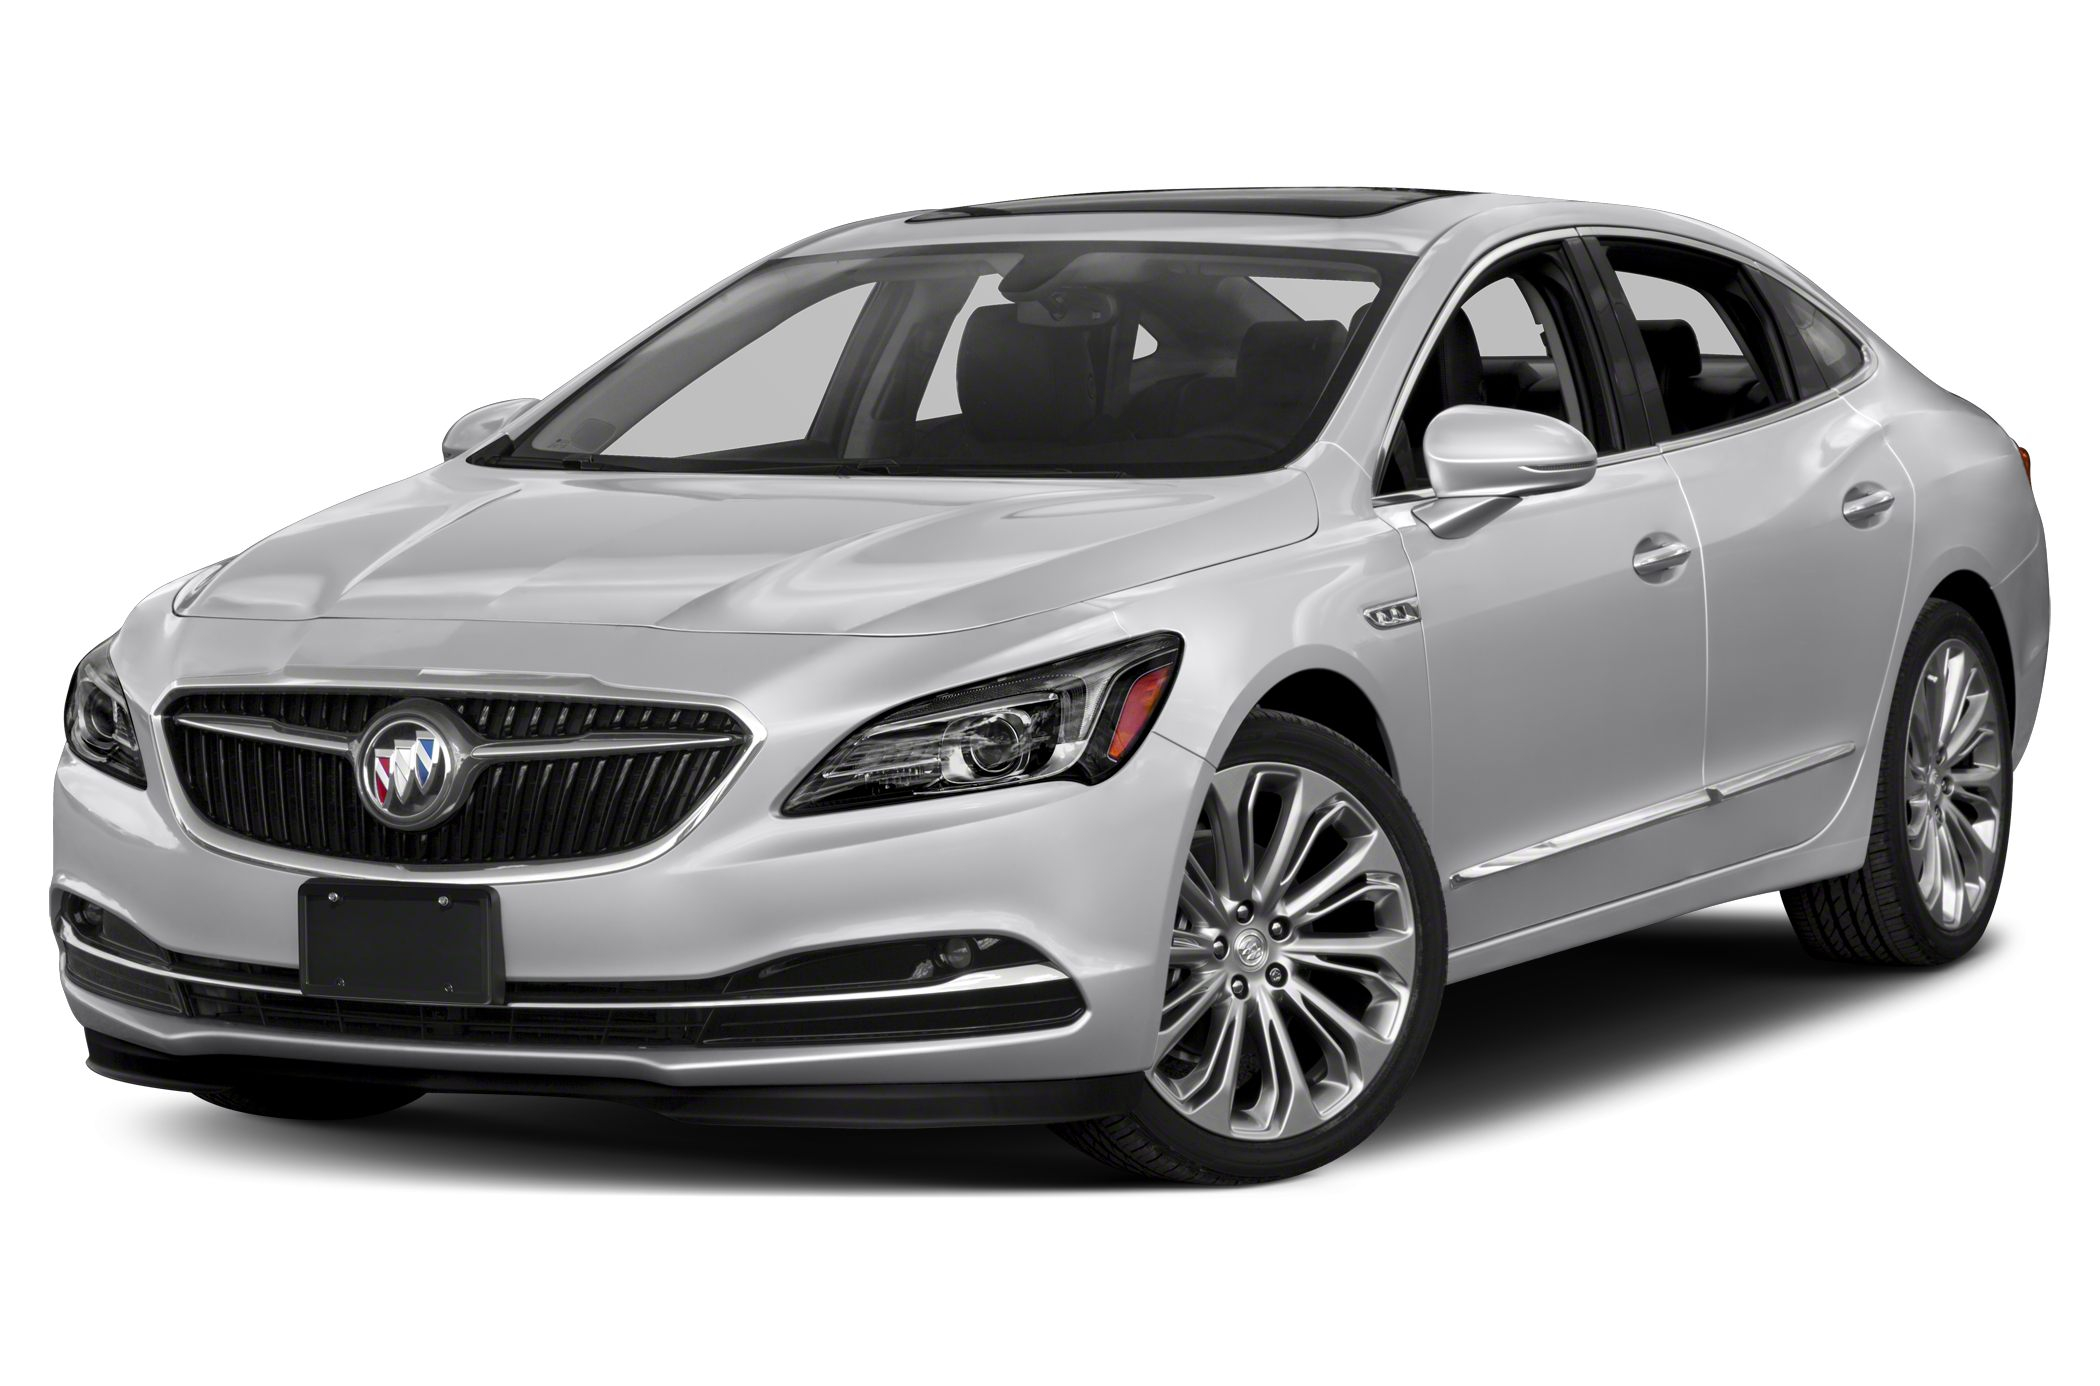 2019 Buick Lacrosse Specs And Prices 2021 Buick Lacrosse Cost, Awd, Build And Price